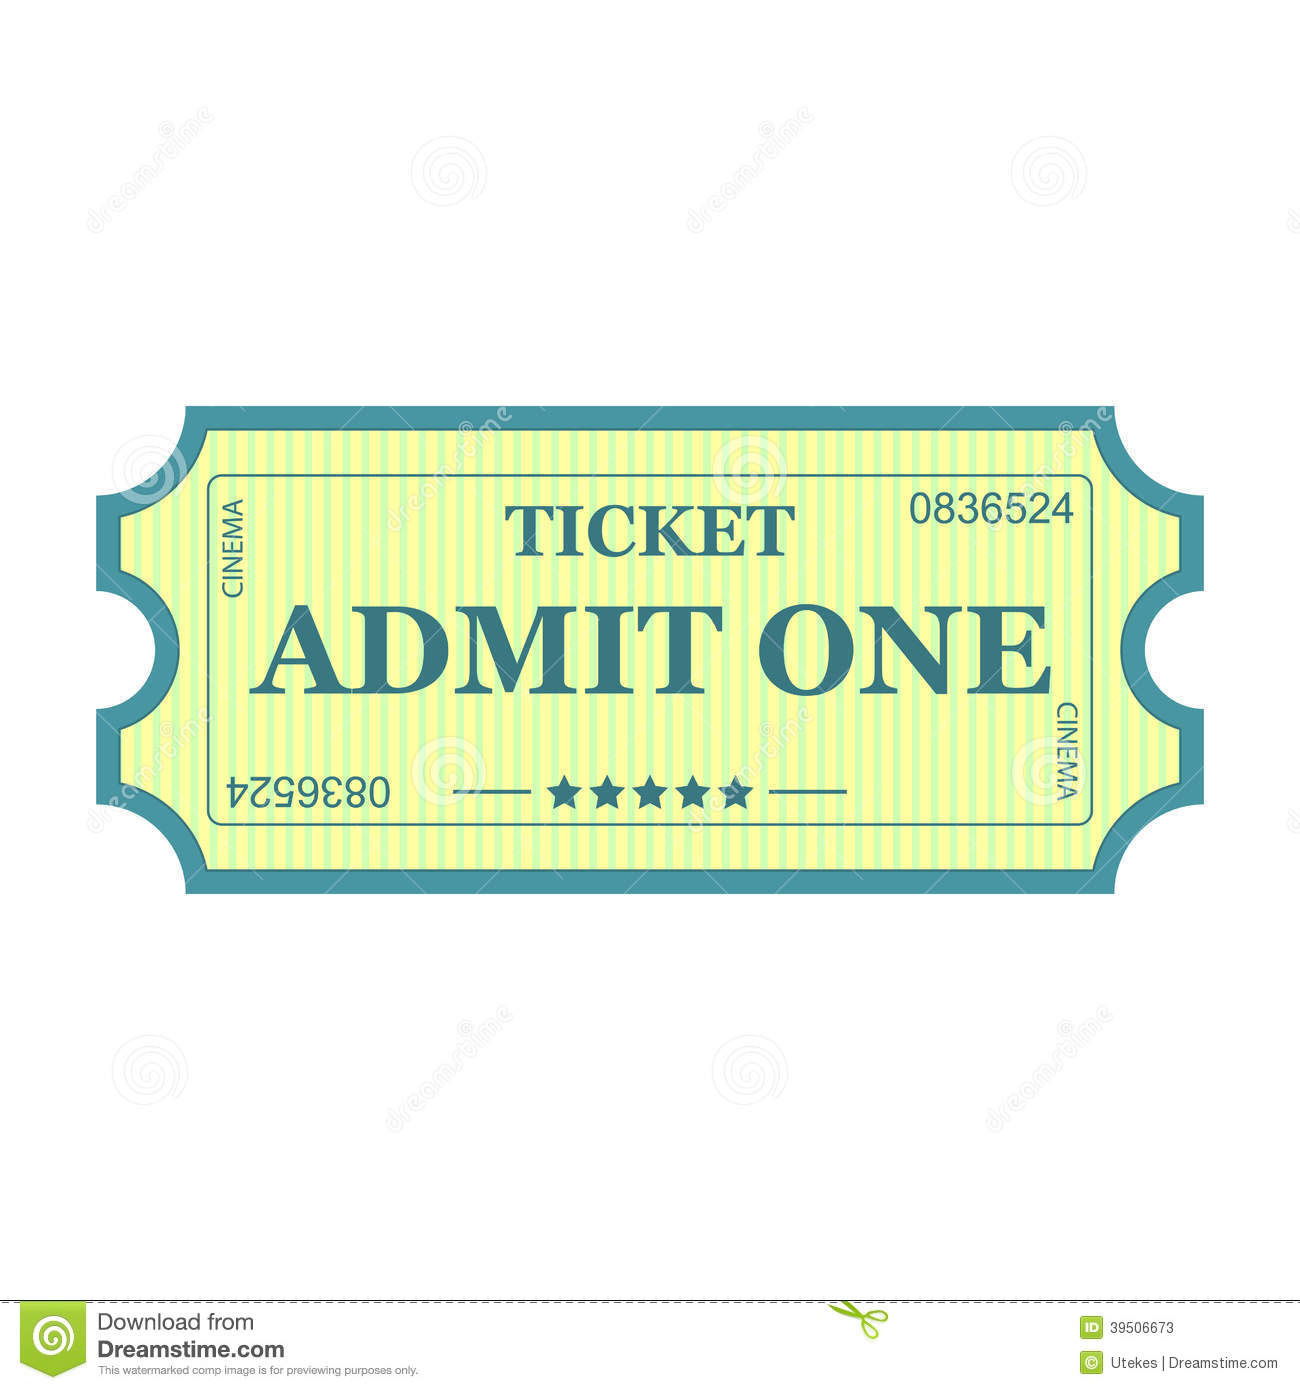 Admit One Ticket Stock Vector - Image: 39506673